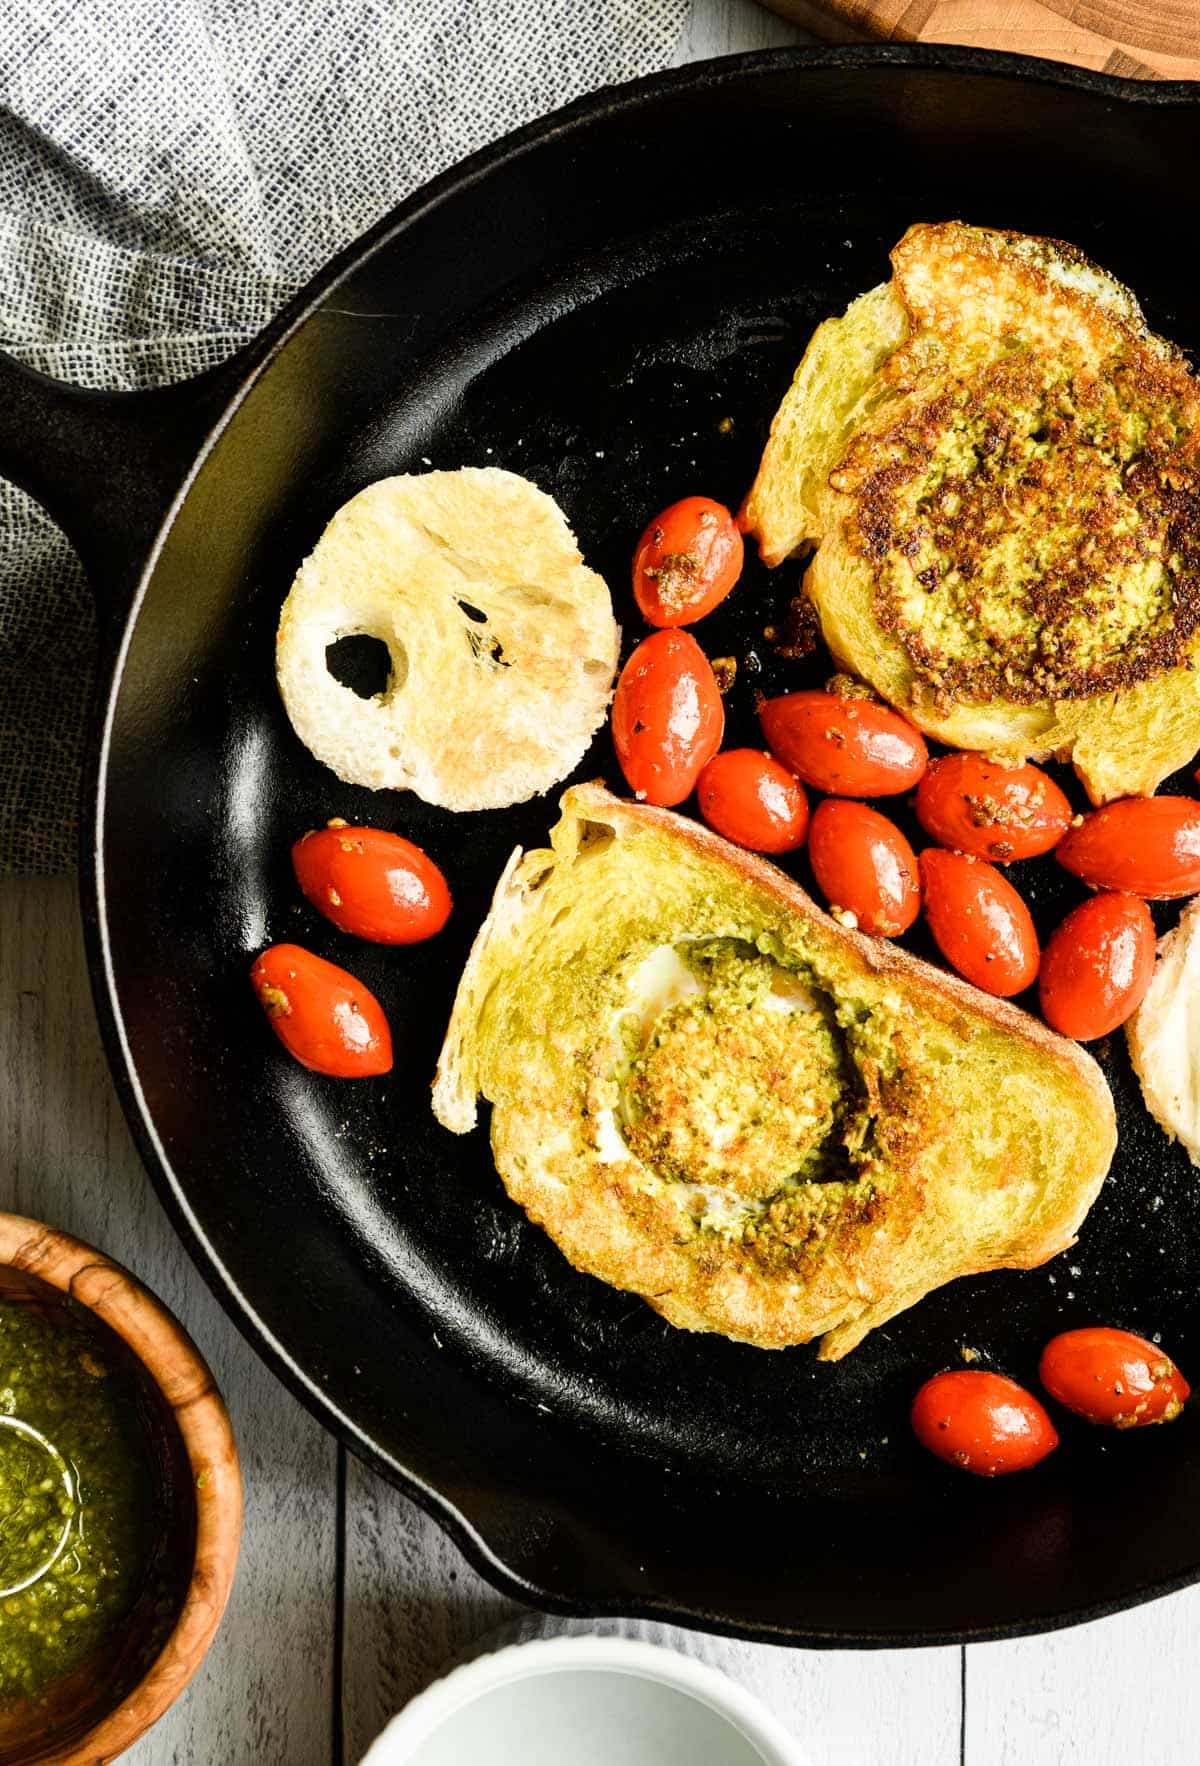 toasted bread with egg in the middle and some cherry tomatoes in a skillet